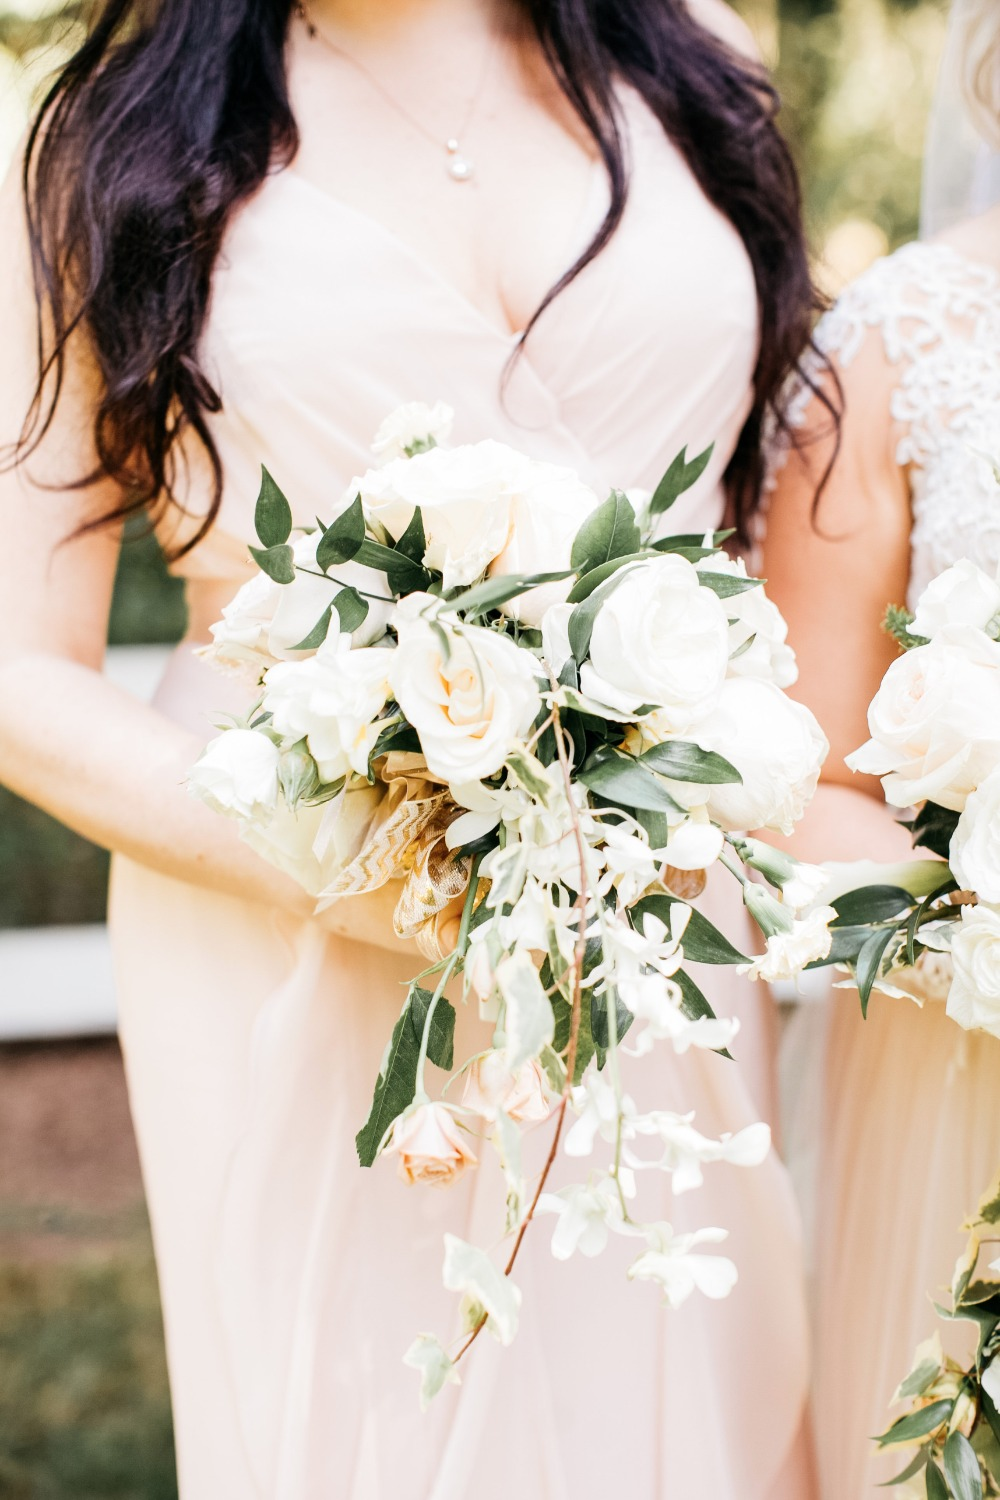 Blush dress and white bridesmaid bouquet